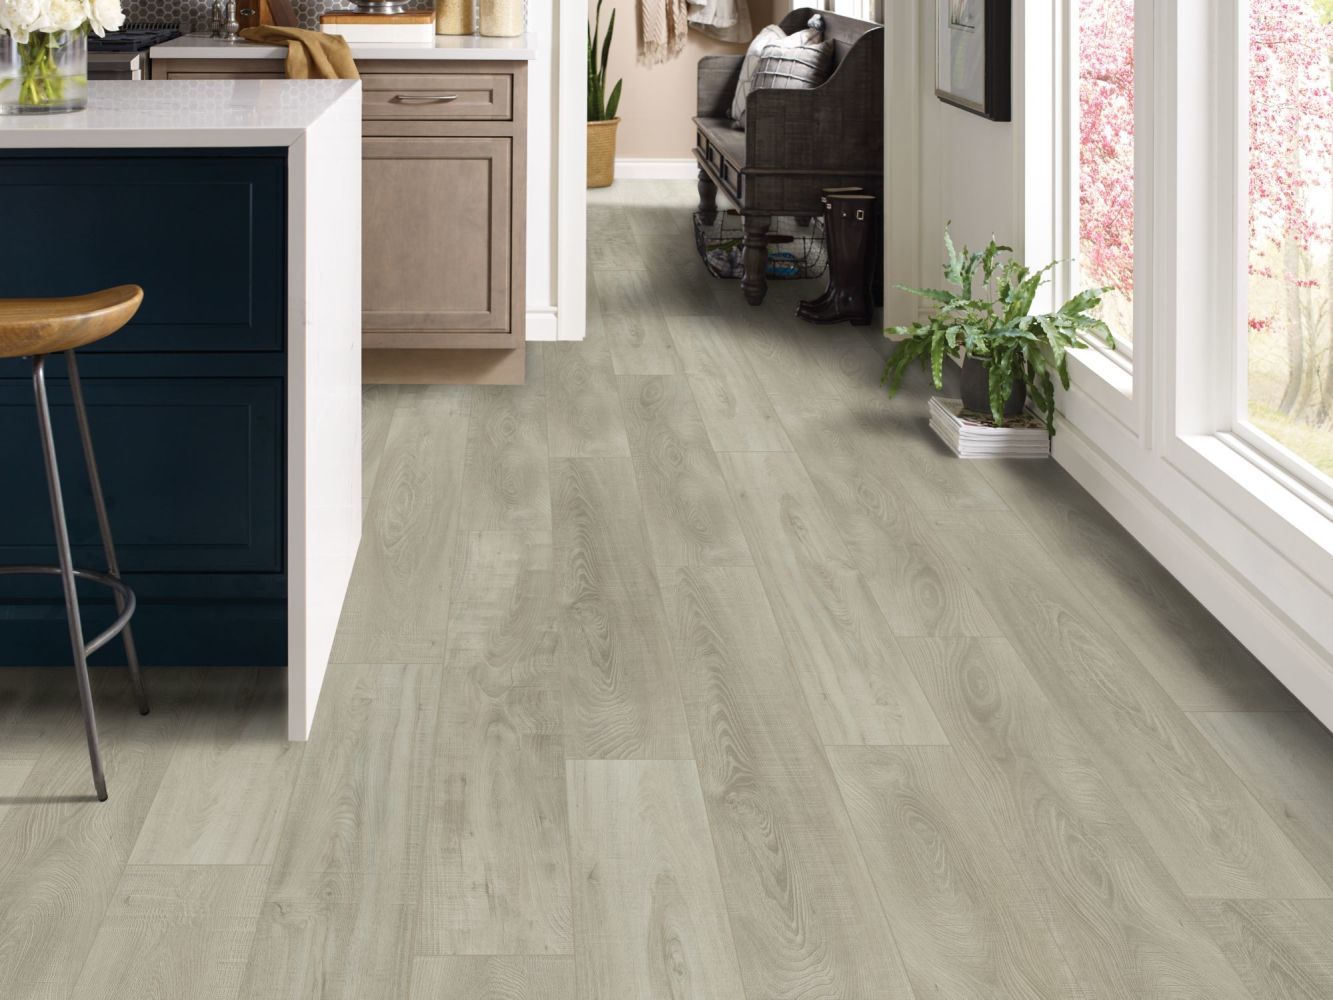 Shaw Floors Vinyl Residential Pantheon HD Plus Trevi 01026_2001V